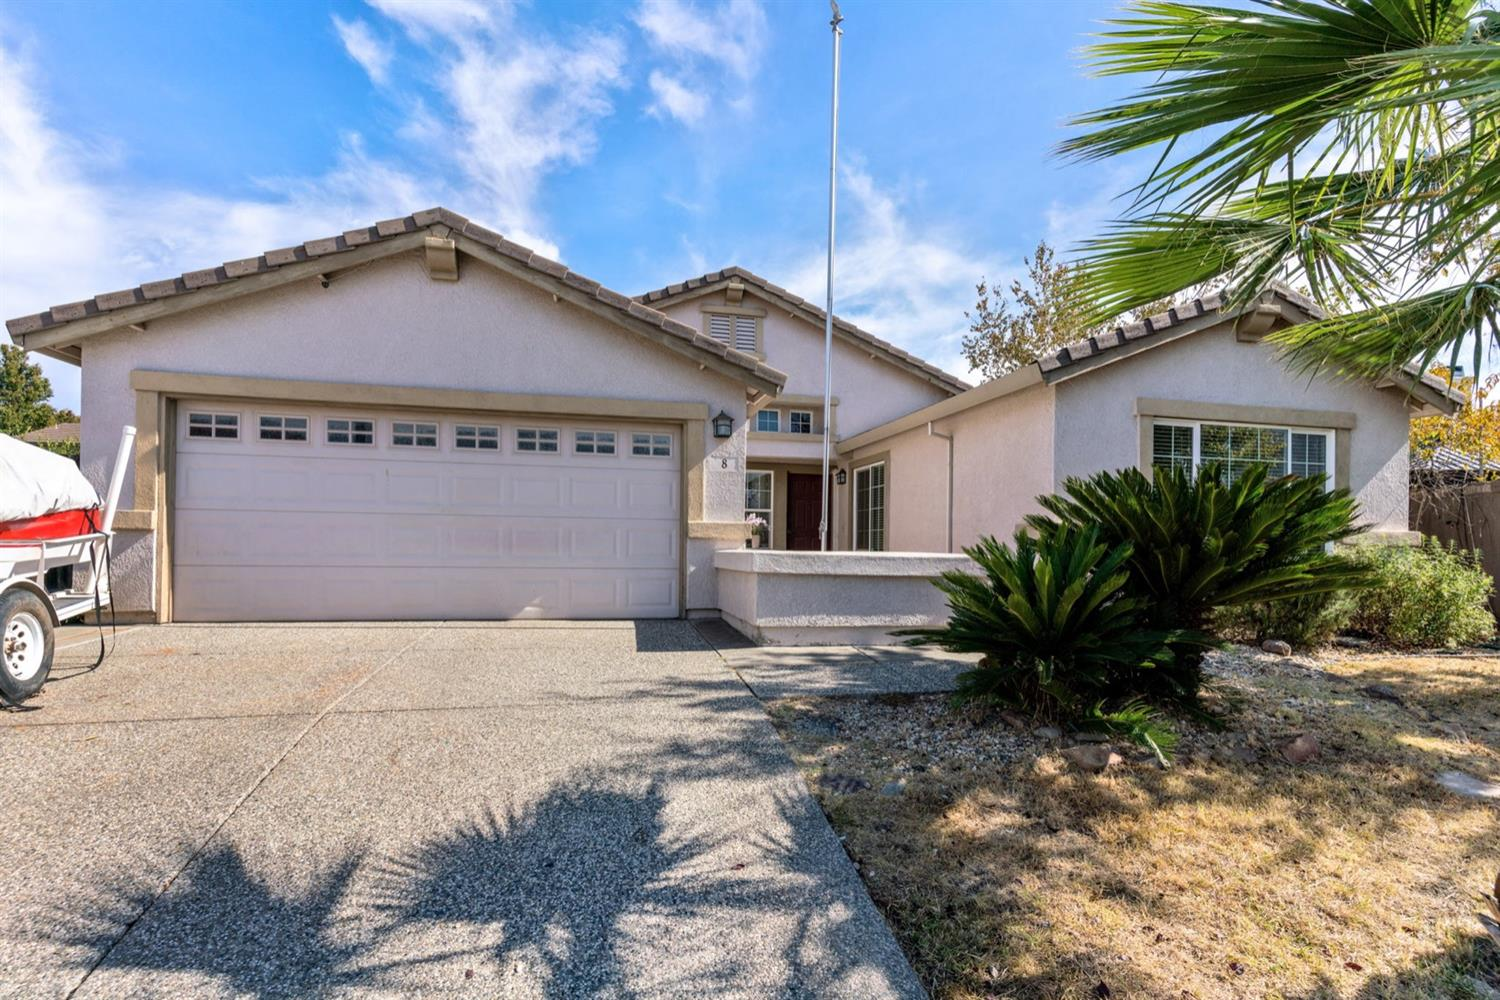 Located within the highly sought after Regency Park community, this updated single story home has it